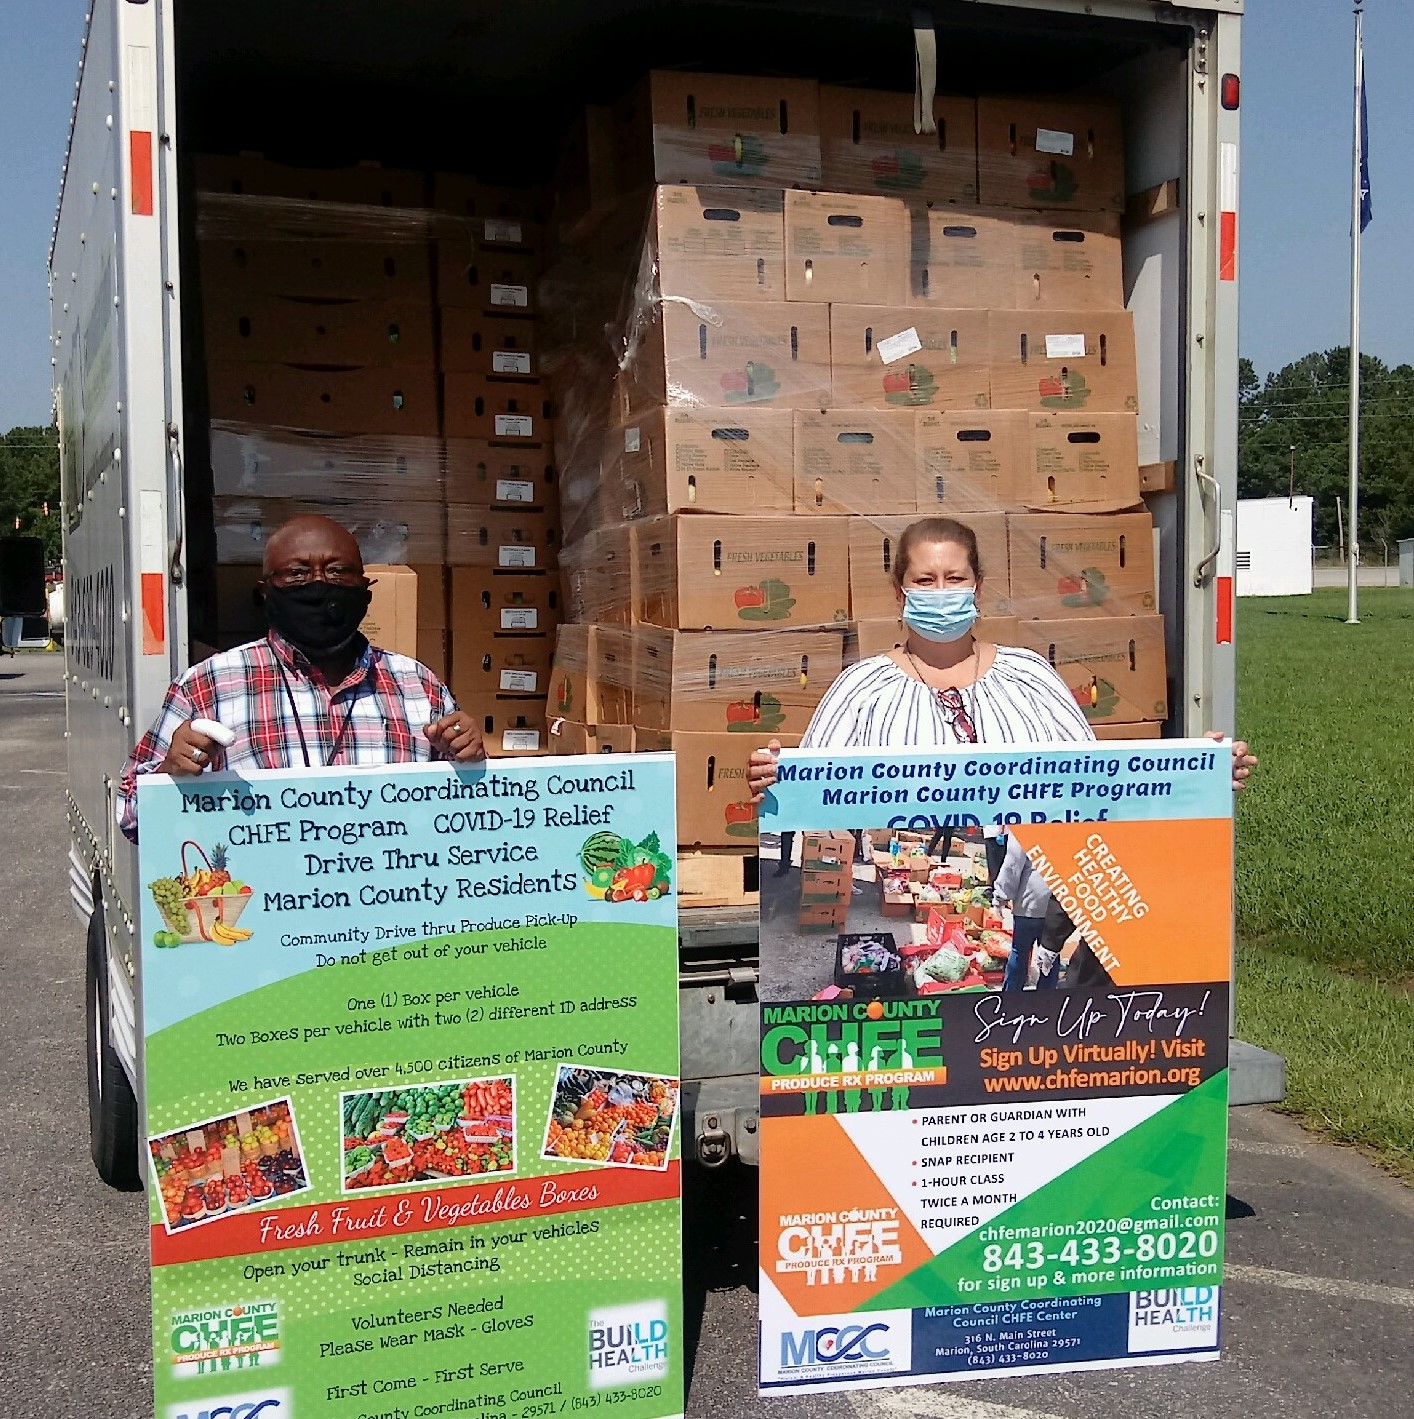 Staff pose in front of a truck stocked with food for distribution.